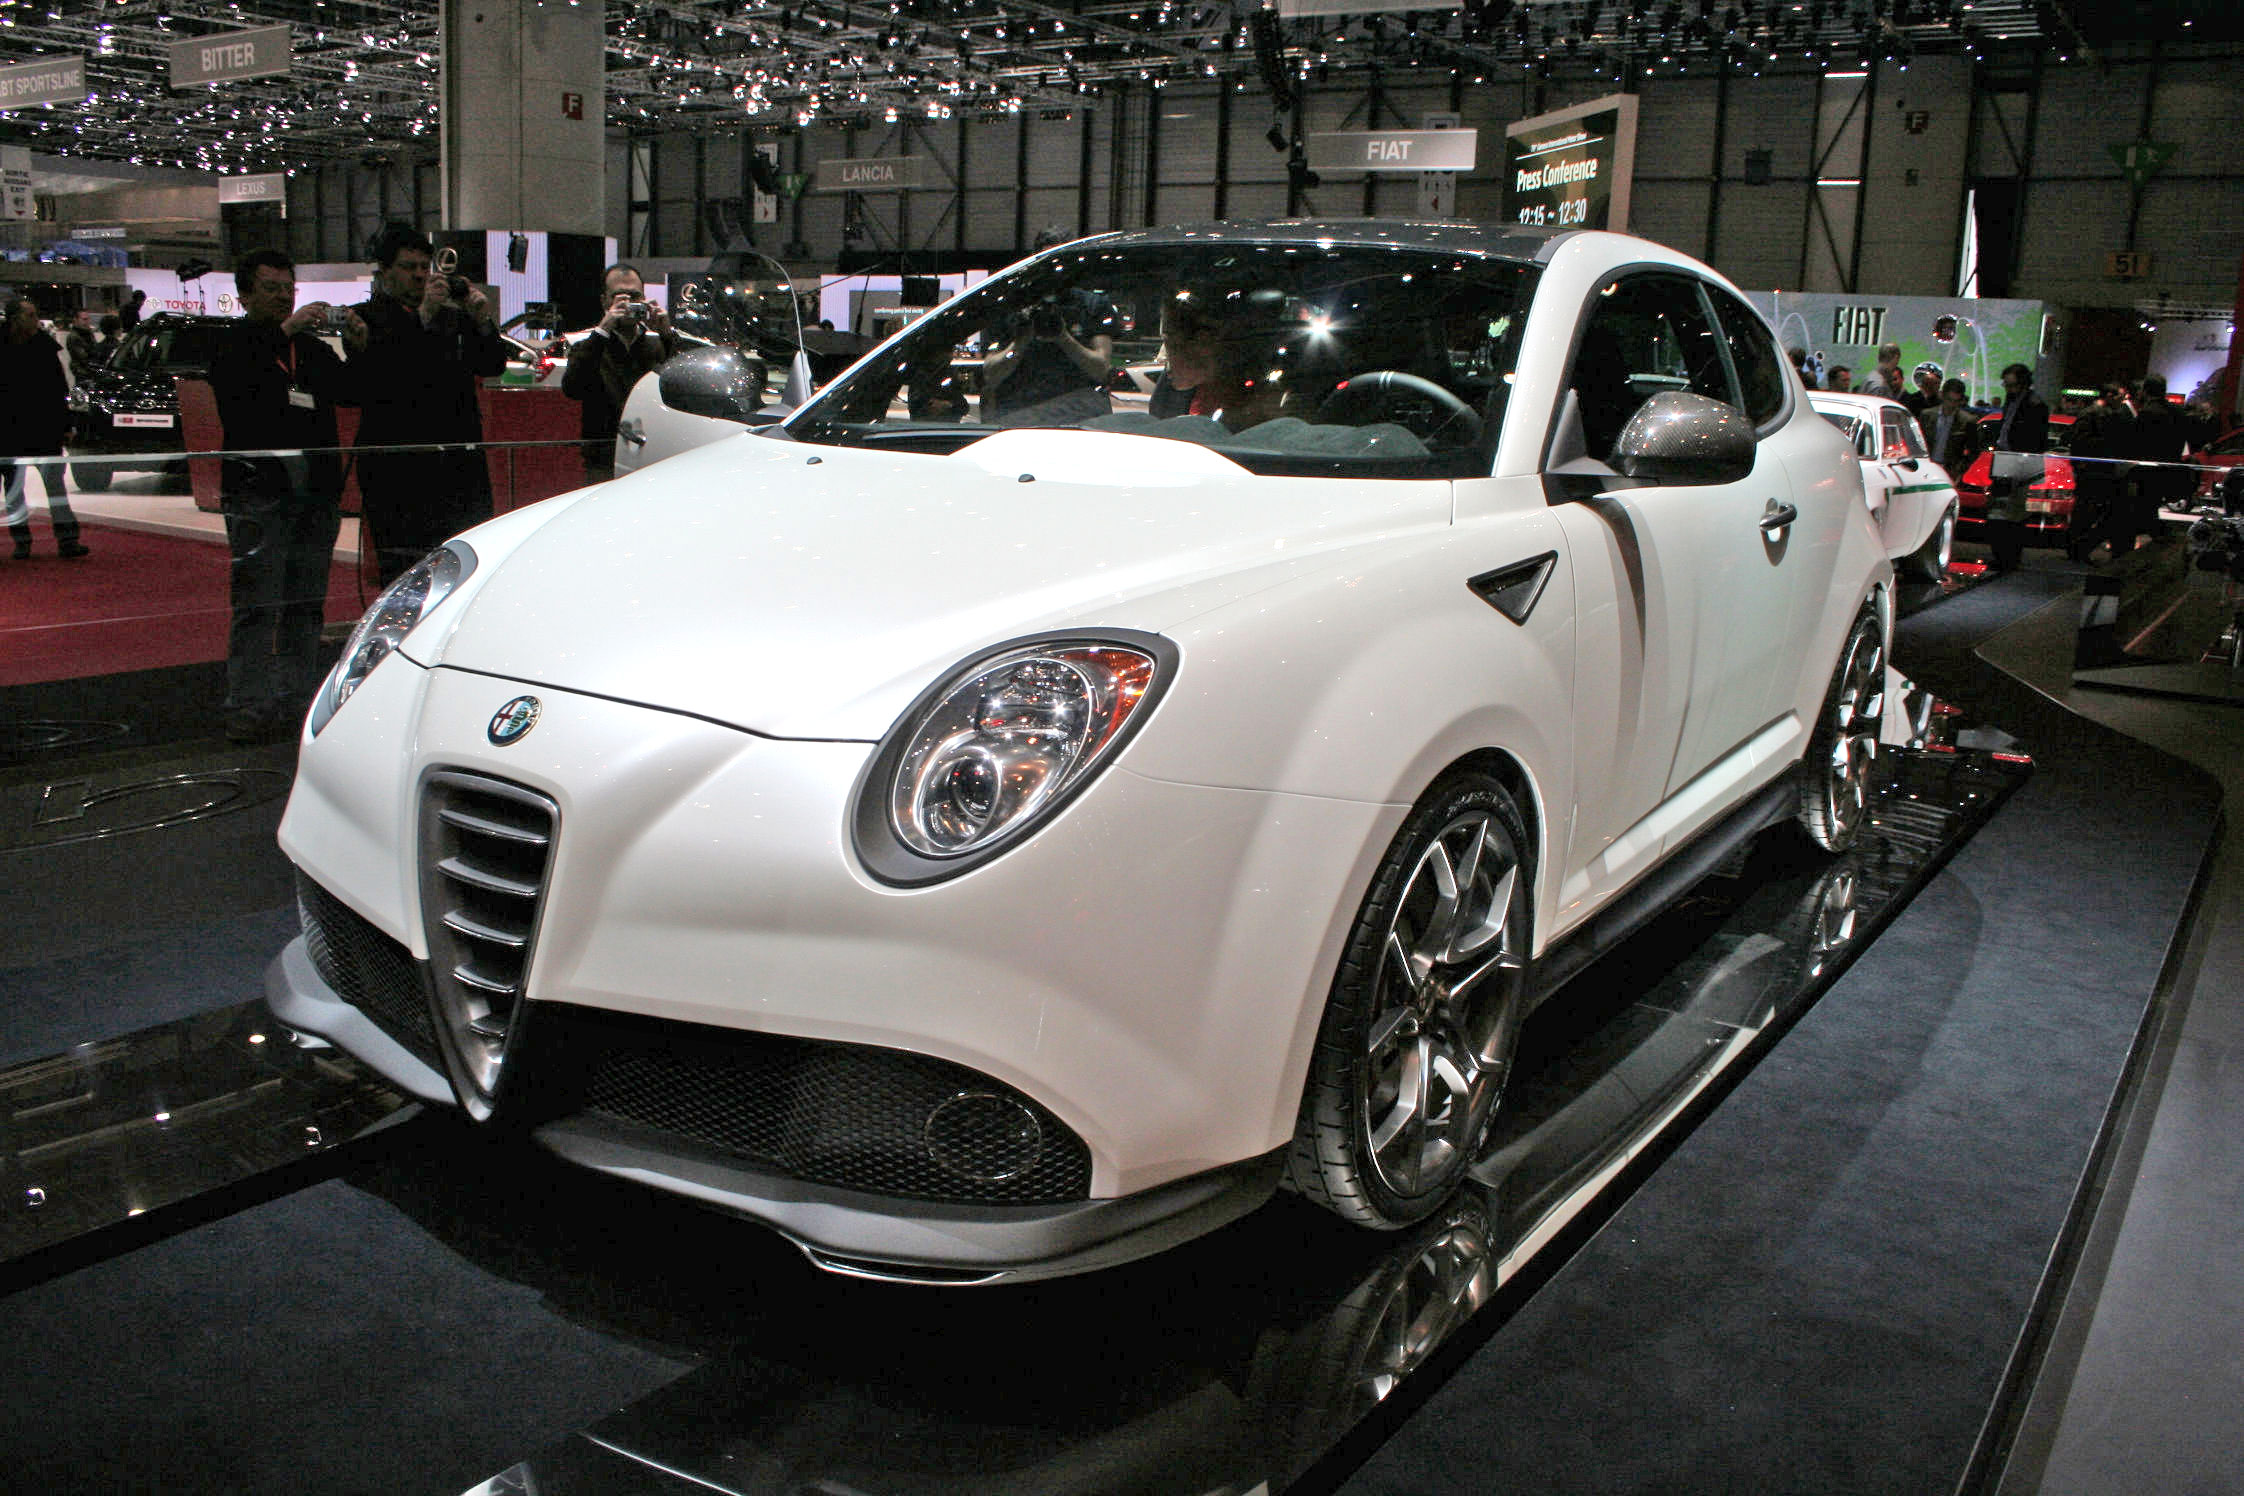 alfa romeo mito gta concept salon de gen ve 2009. Black Bedroom Furniture Sets. Home Design Ideas